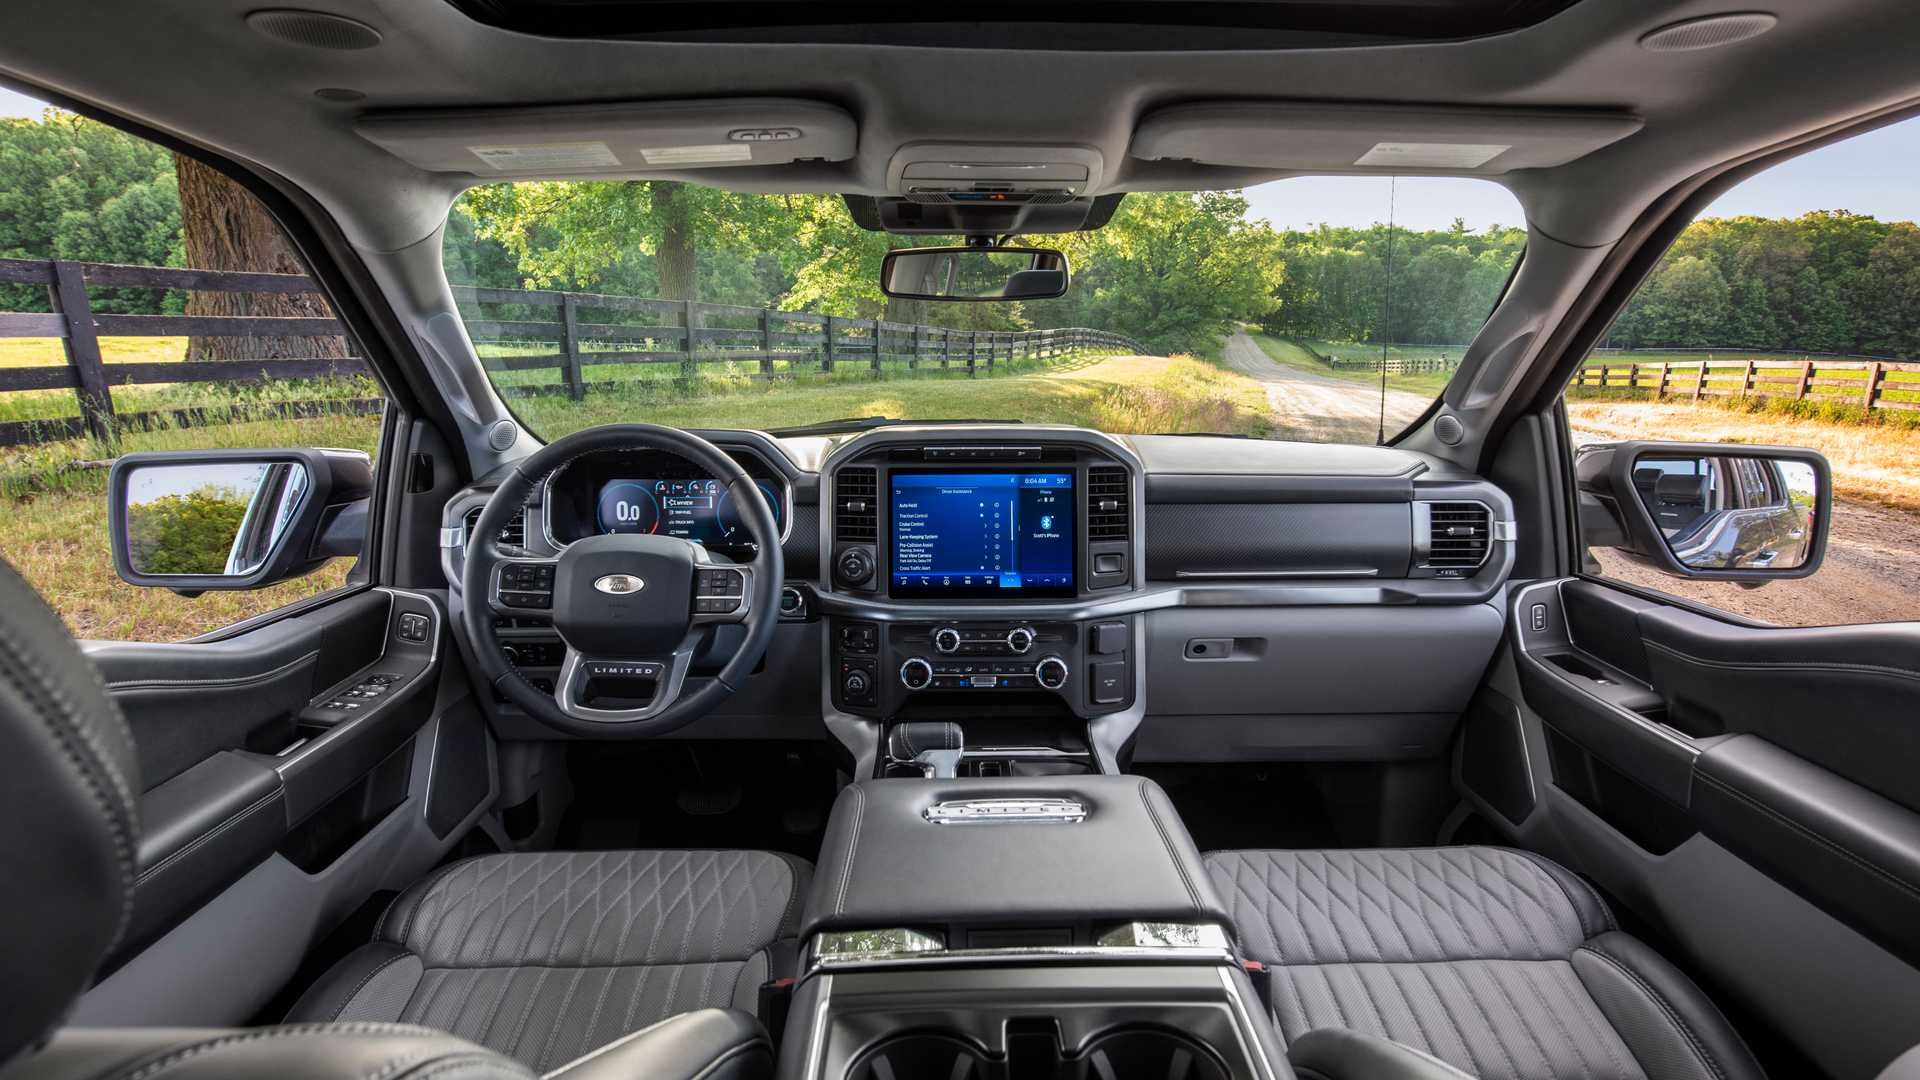 2021 Ford F 150 Display Screens Look Amazing In New Video 1920x1080